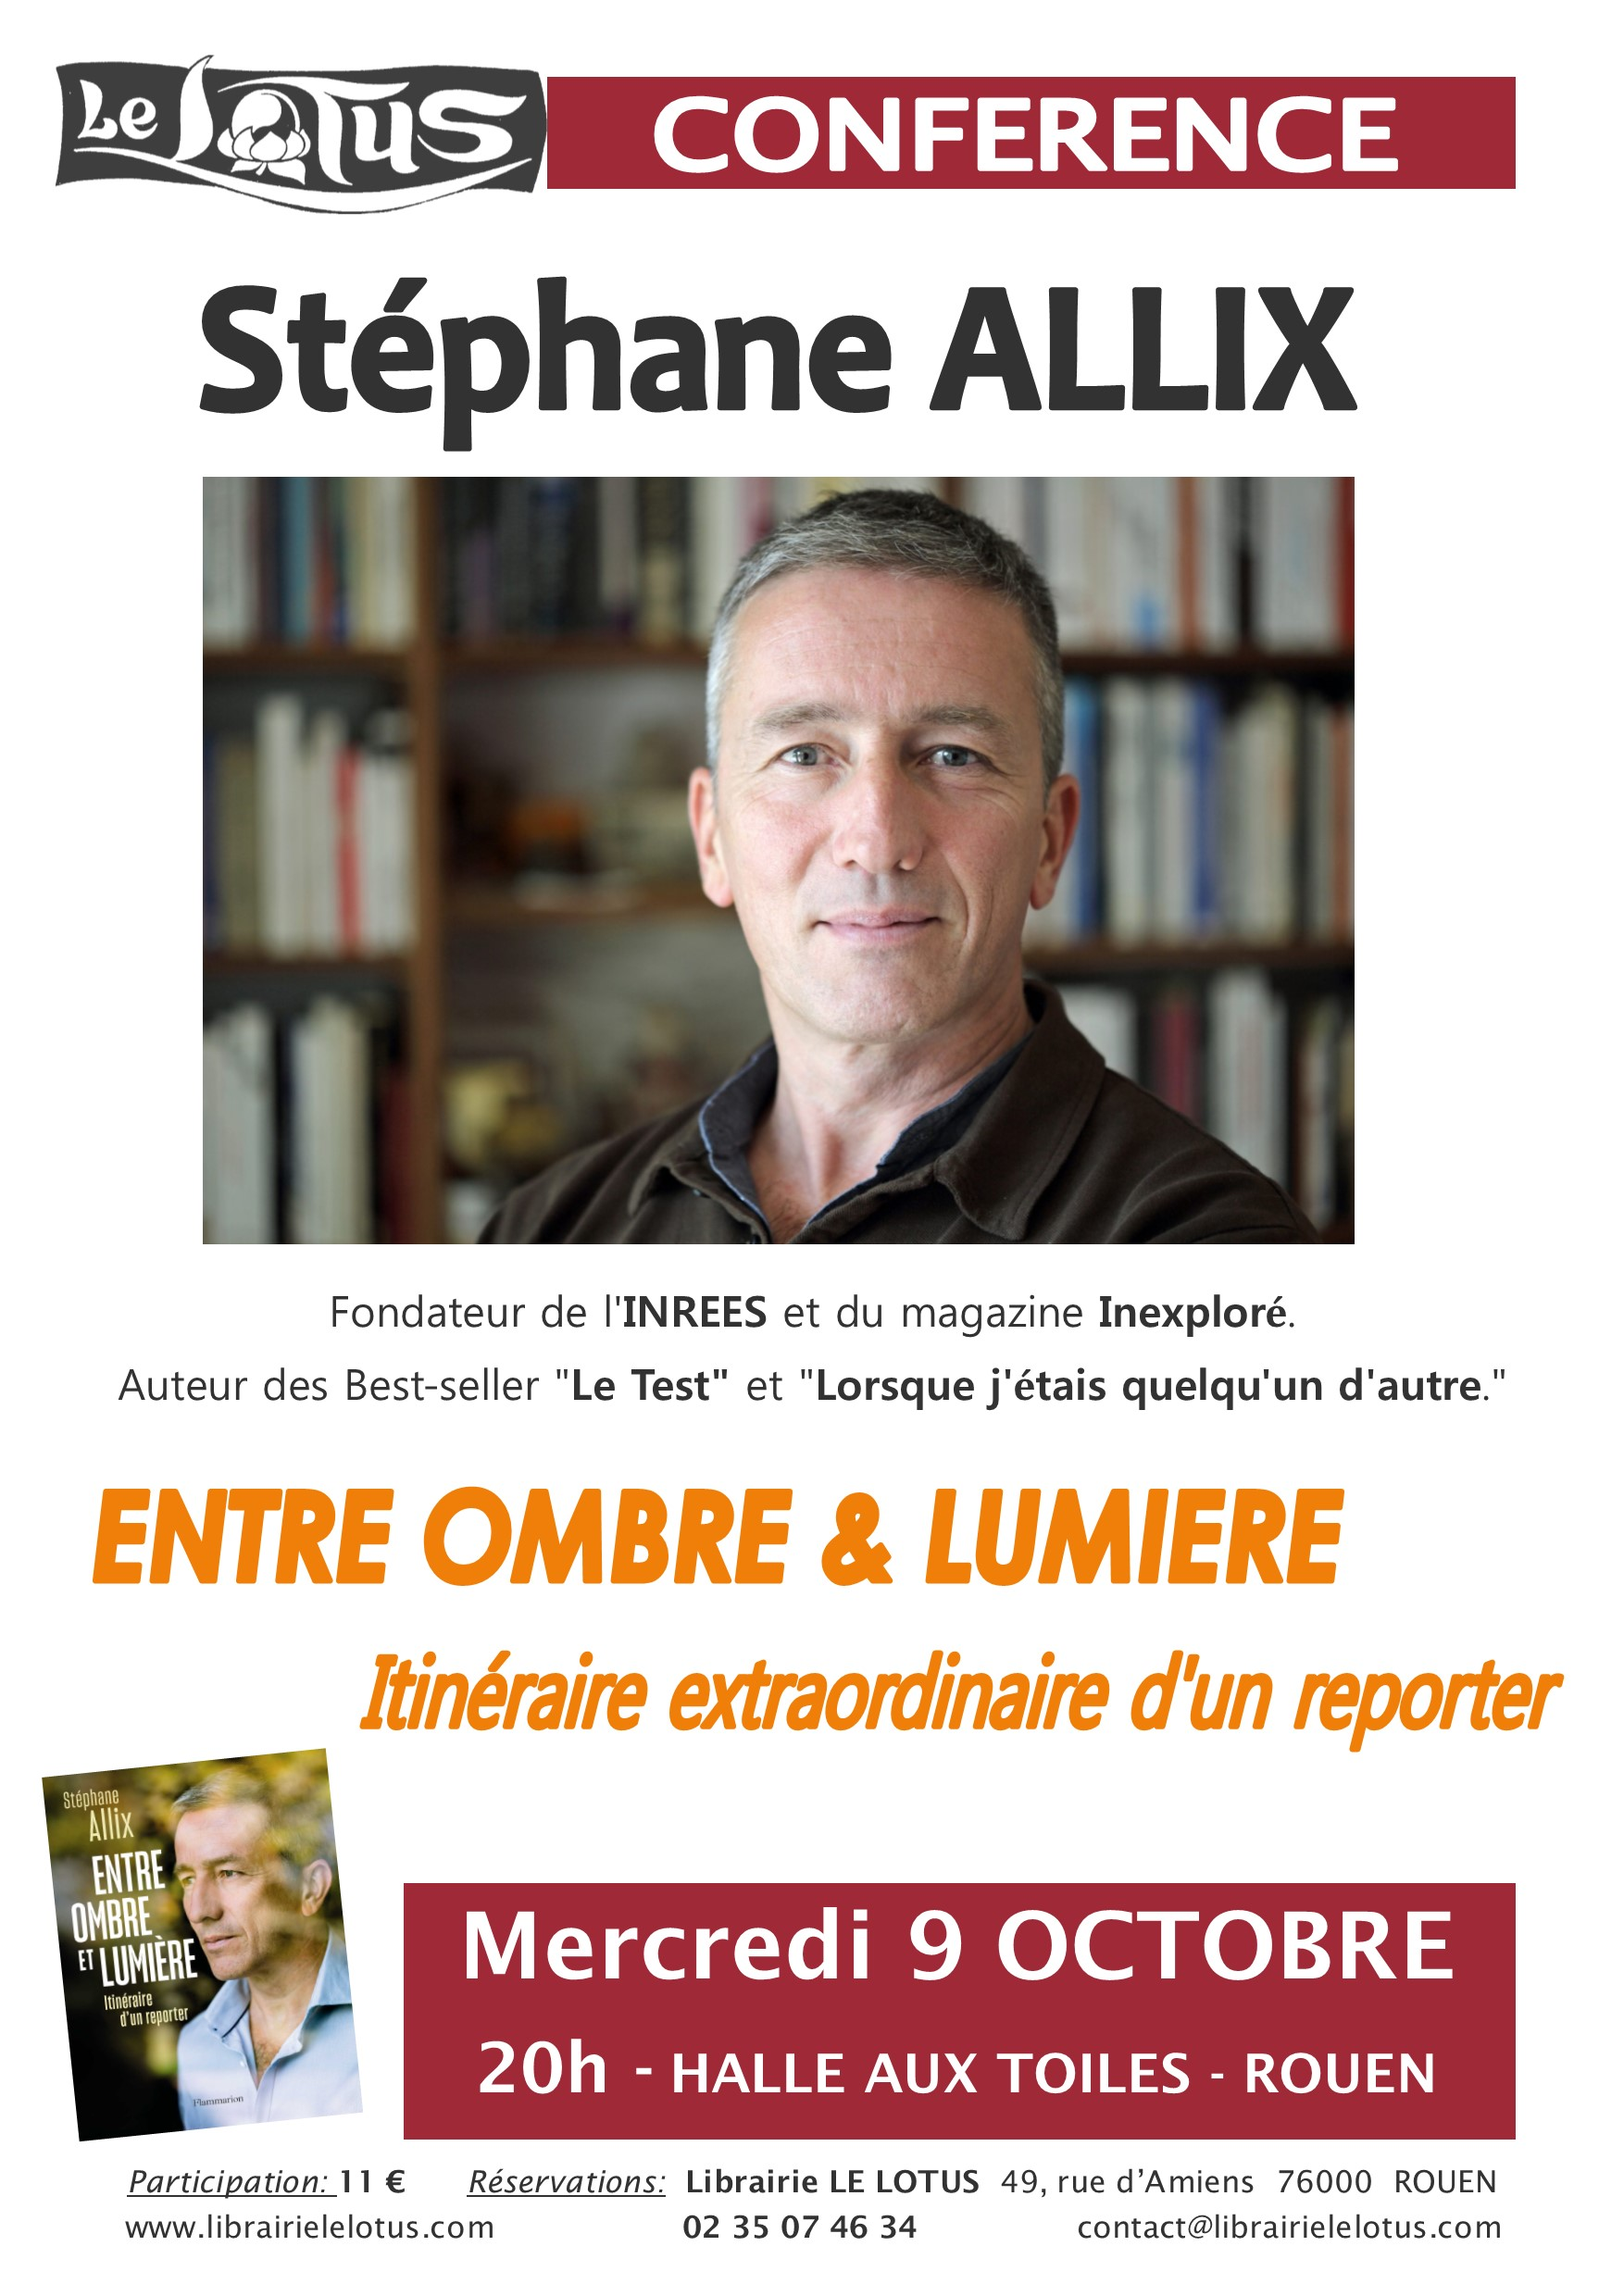 CONFERENCE - STEPHANE ALLIX - ENTRE OMBRE ET LUMIERE